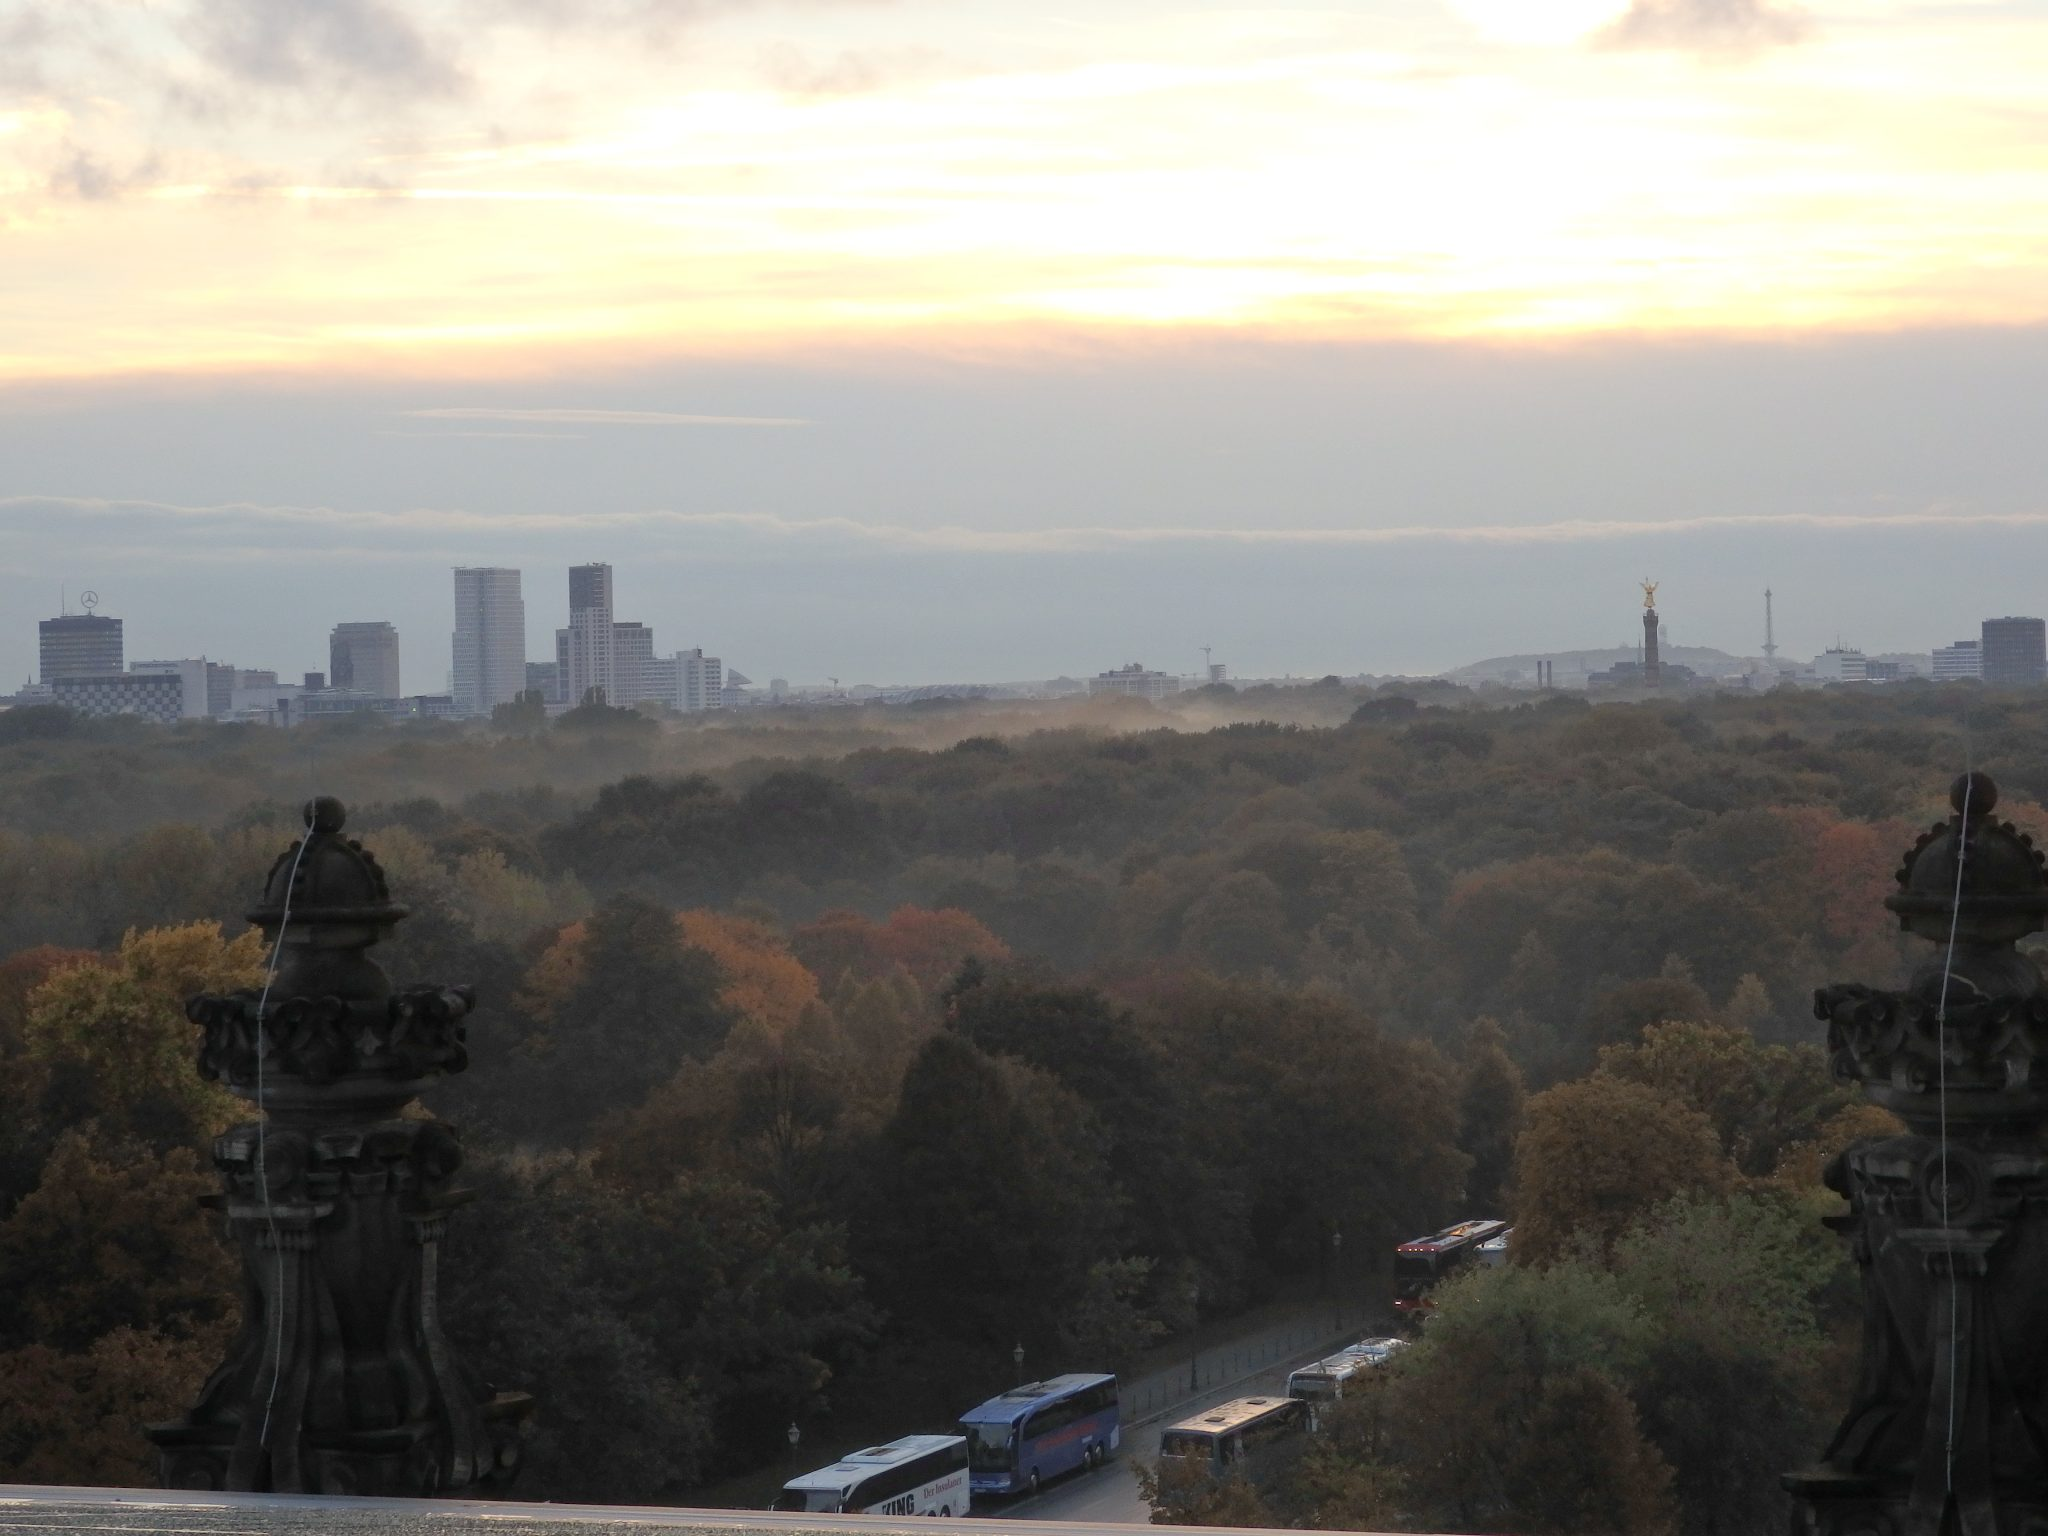 """Our sunset ended in a bank of clouds on the horizon. In the foreground, the Tiergarten park. The buildings in the distance on the left are the """"City West"""" district around Kurfurstendamm. The pillar on the right is the Victory Column at Grosser Stern."""